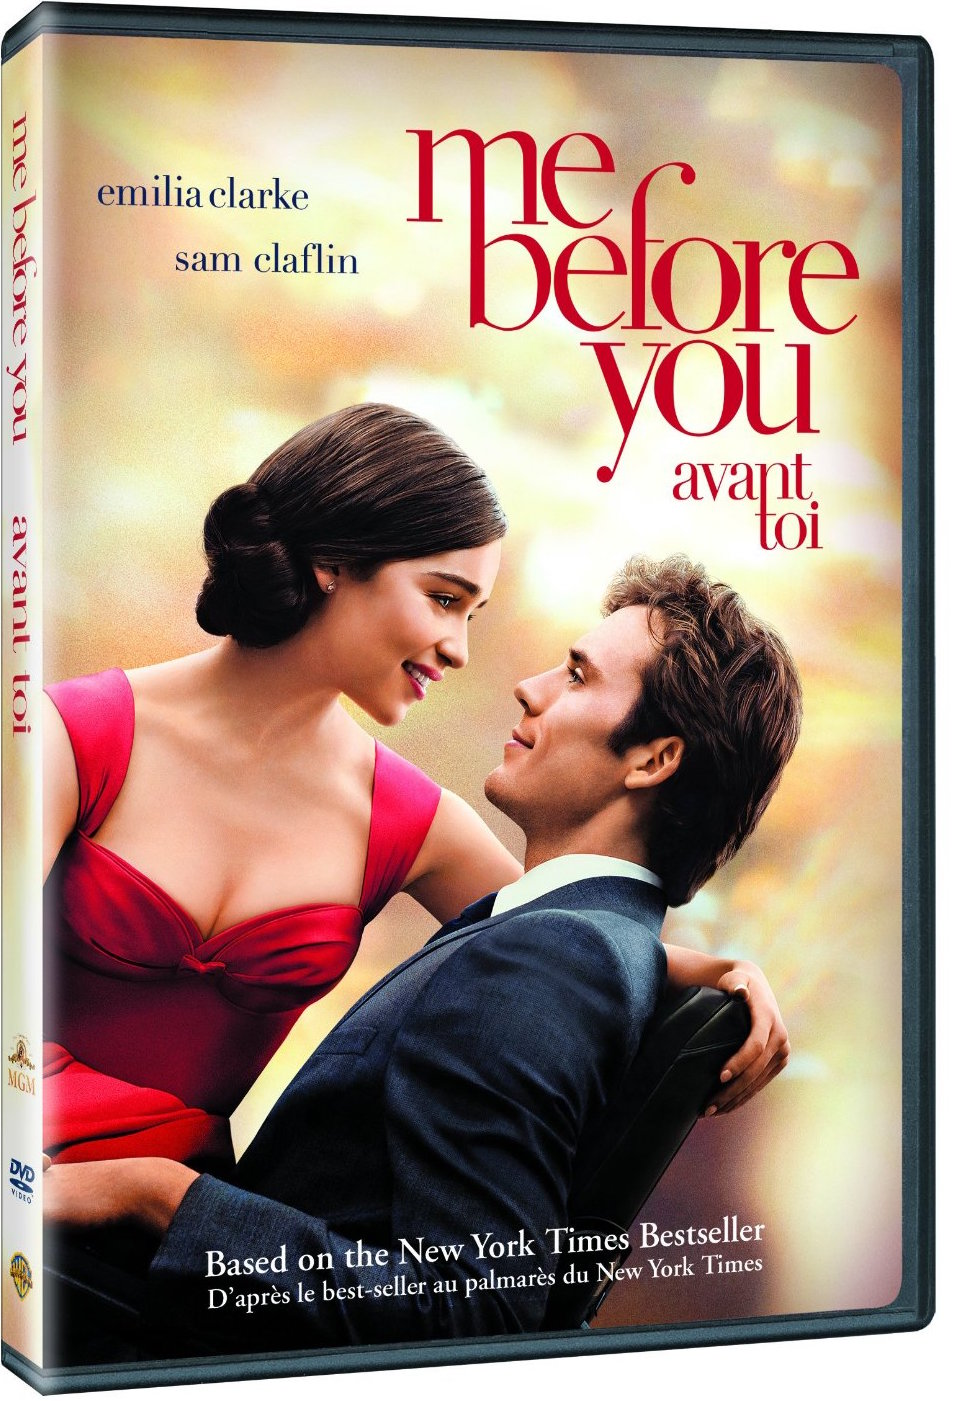 Me Before You DVD cover